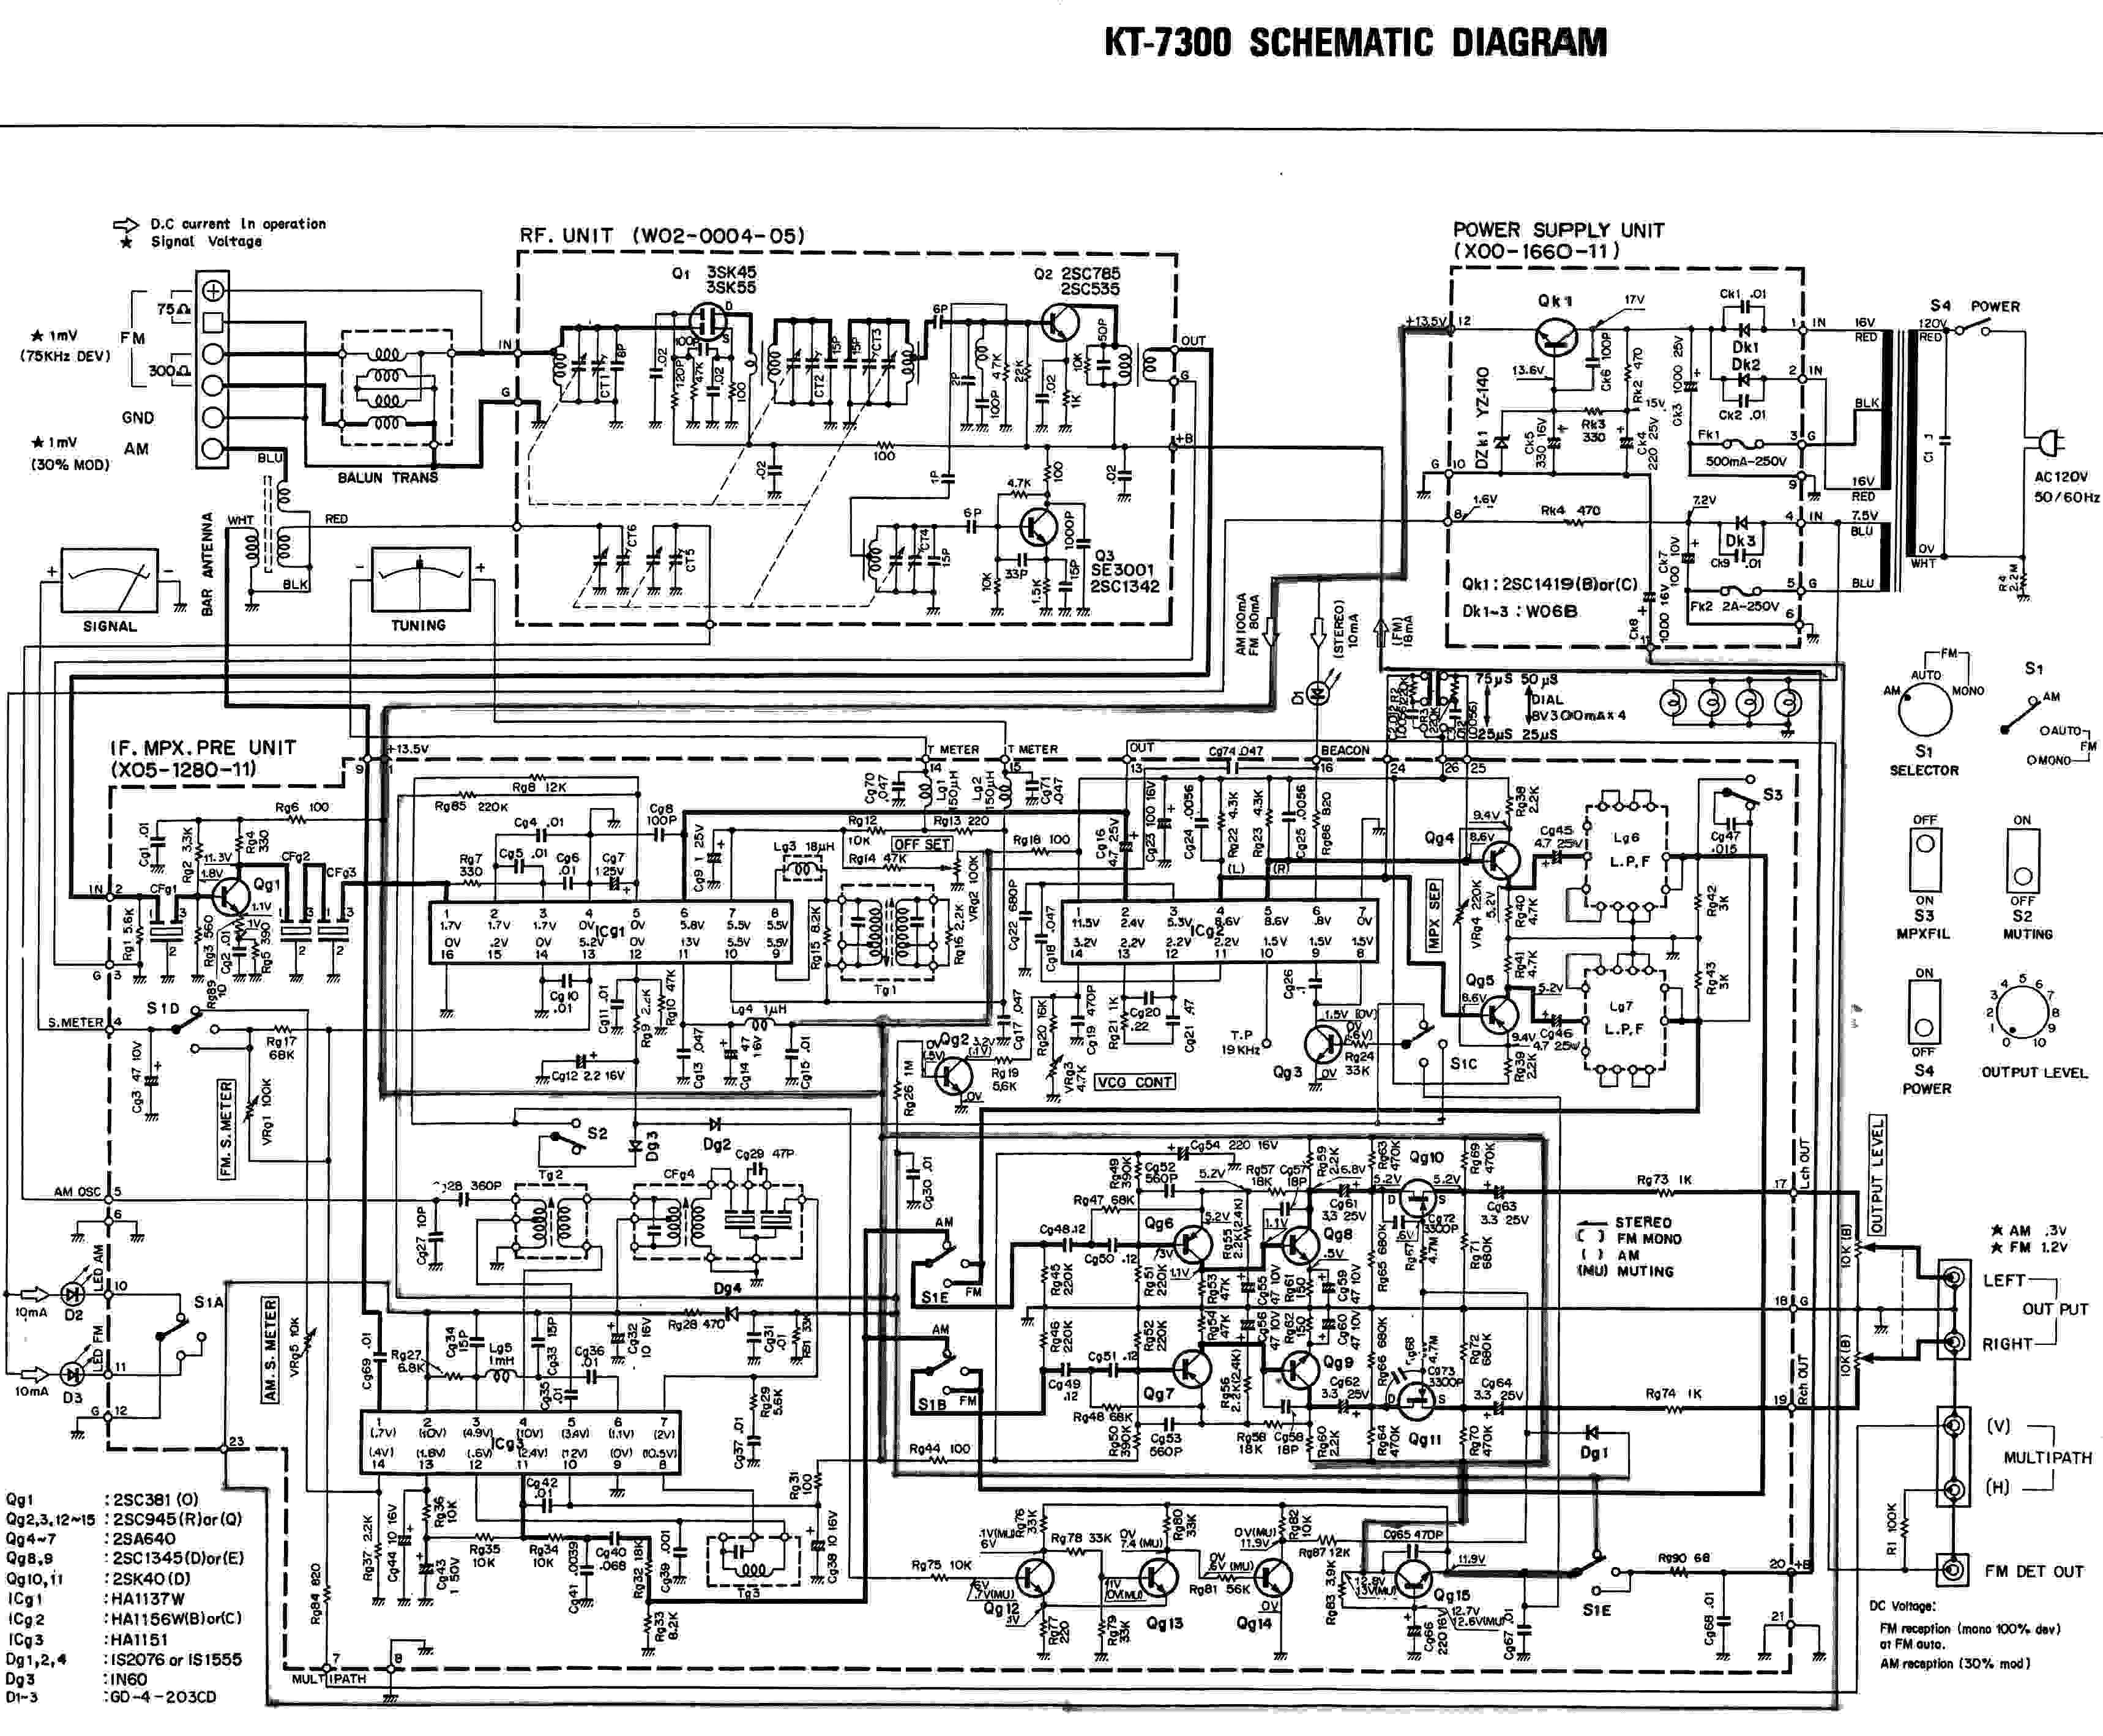 honeywell chronotherm iv plus wiring diagram somurich comfine honeywell chronotherm iii wiring diagram pictures inspiration rh eidetec com 2836